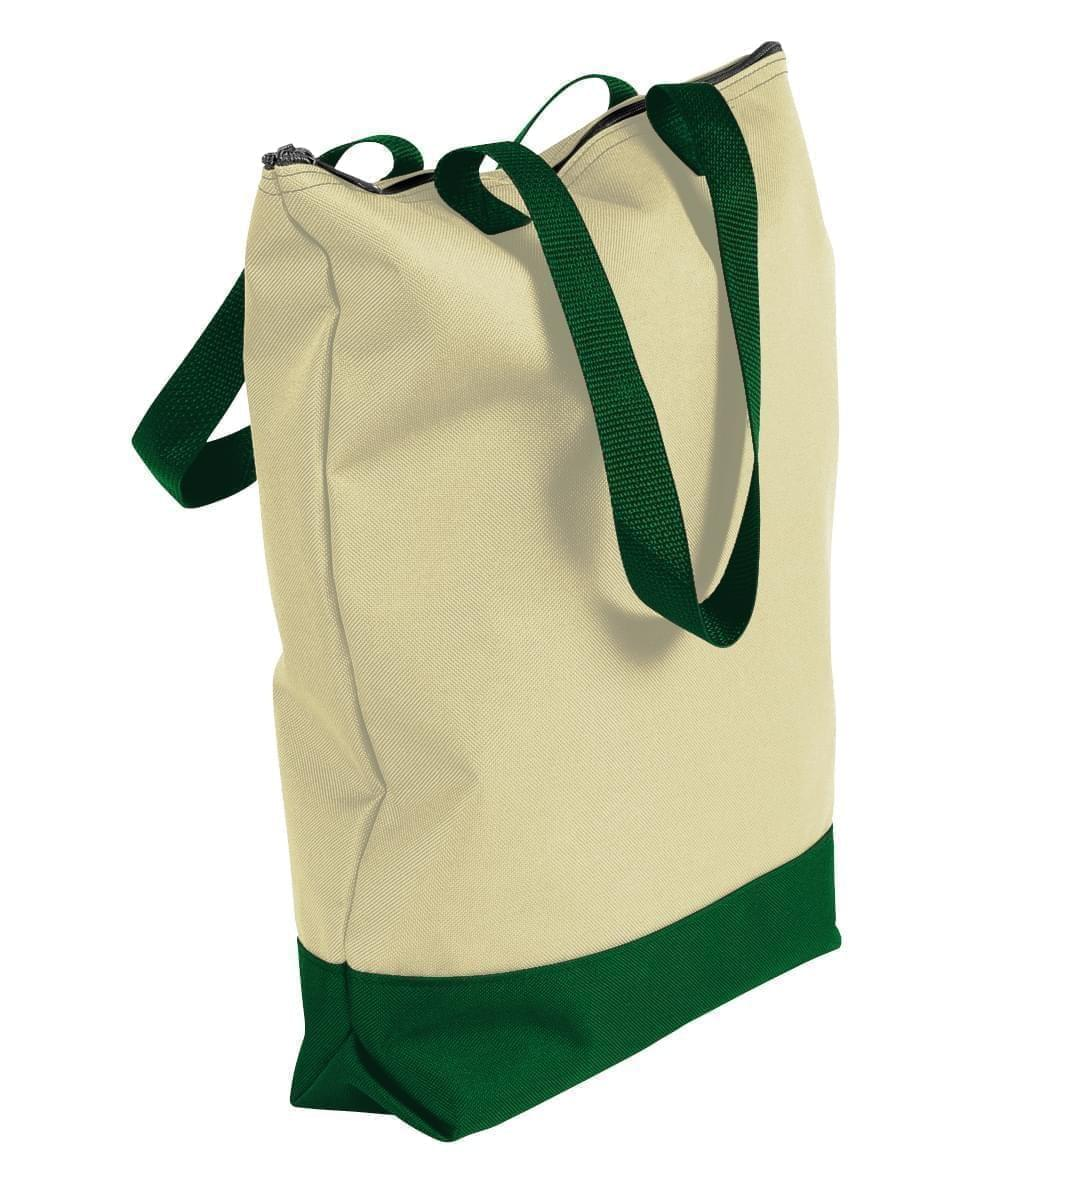 USA Made Canvas Portfolio Tote Bags, Natural-Hunter Green, 1AAMX1UAKV